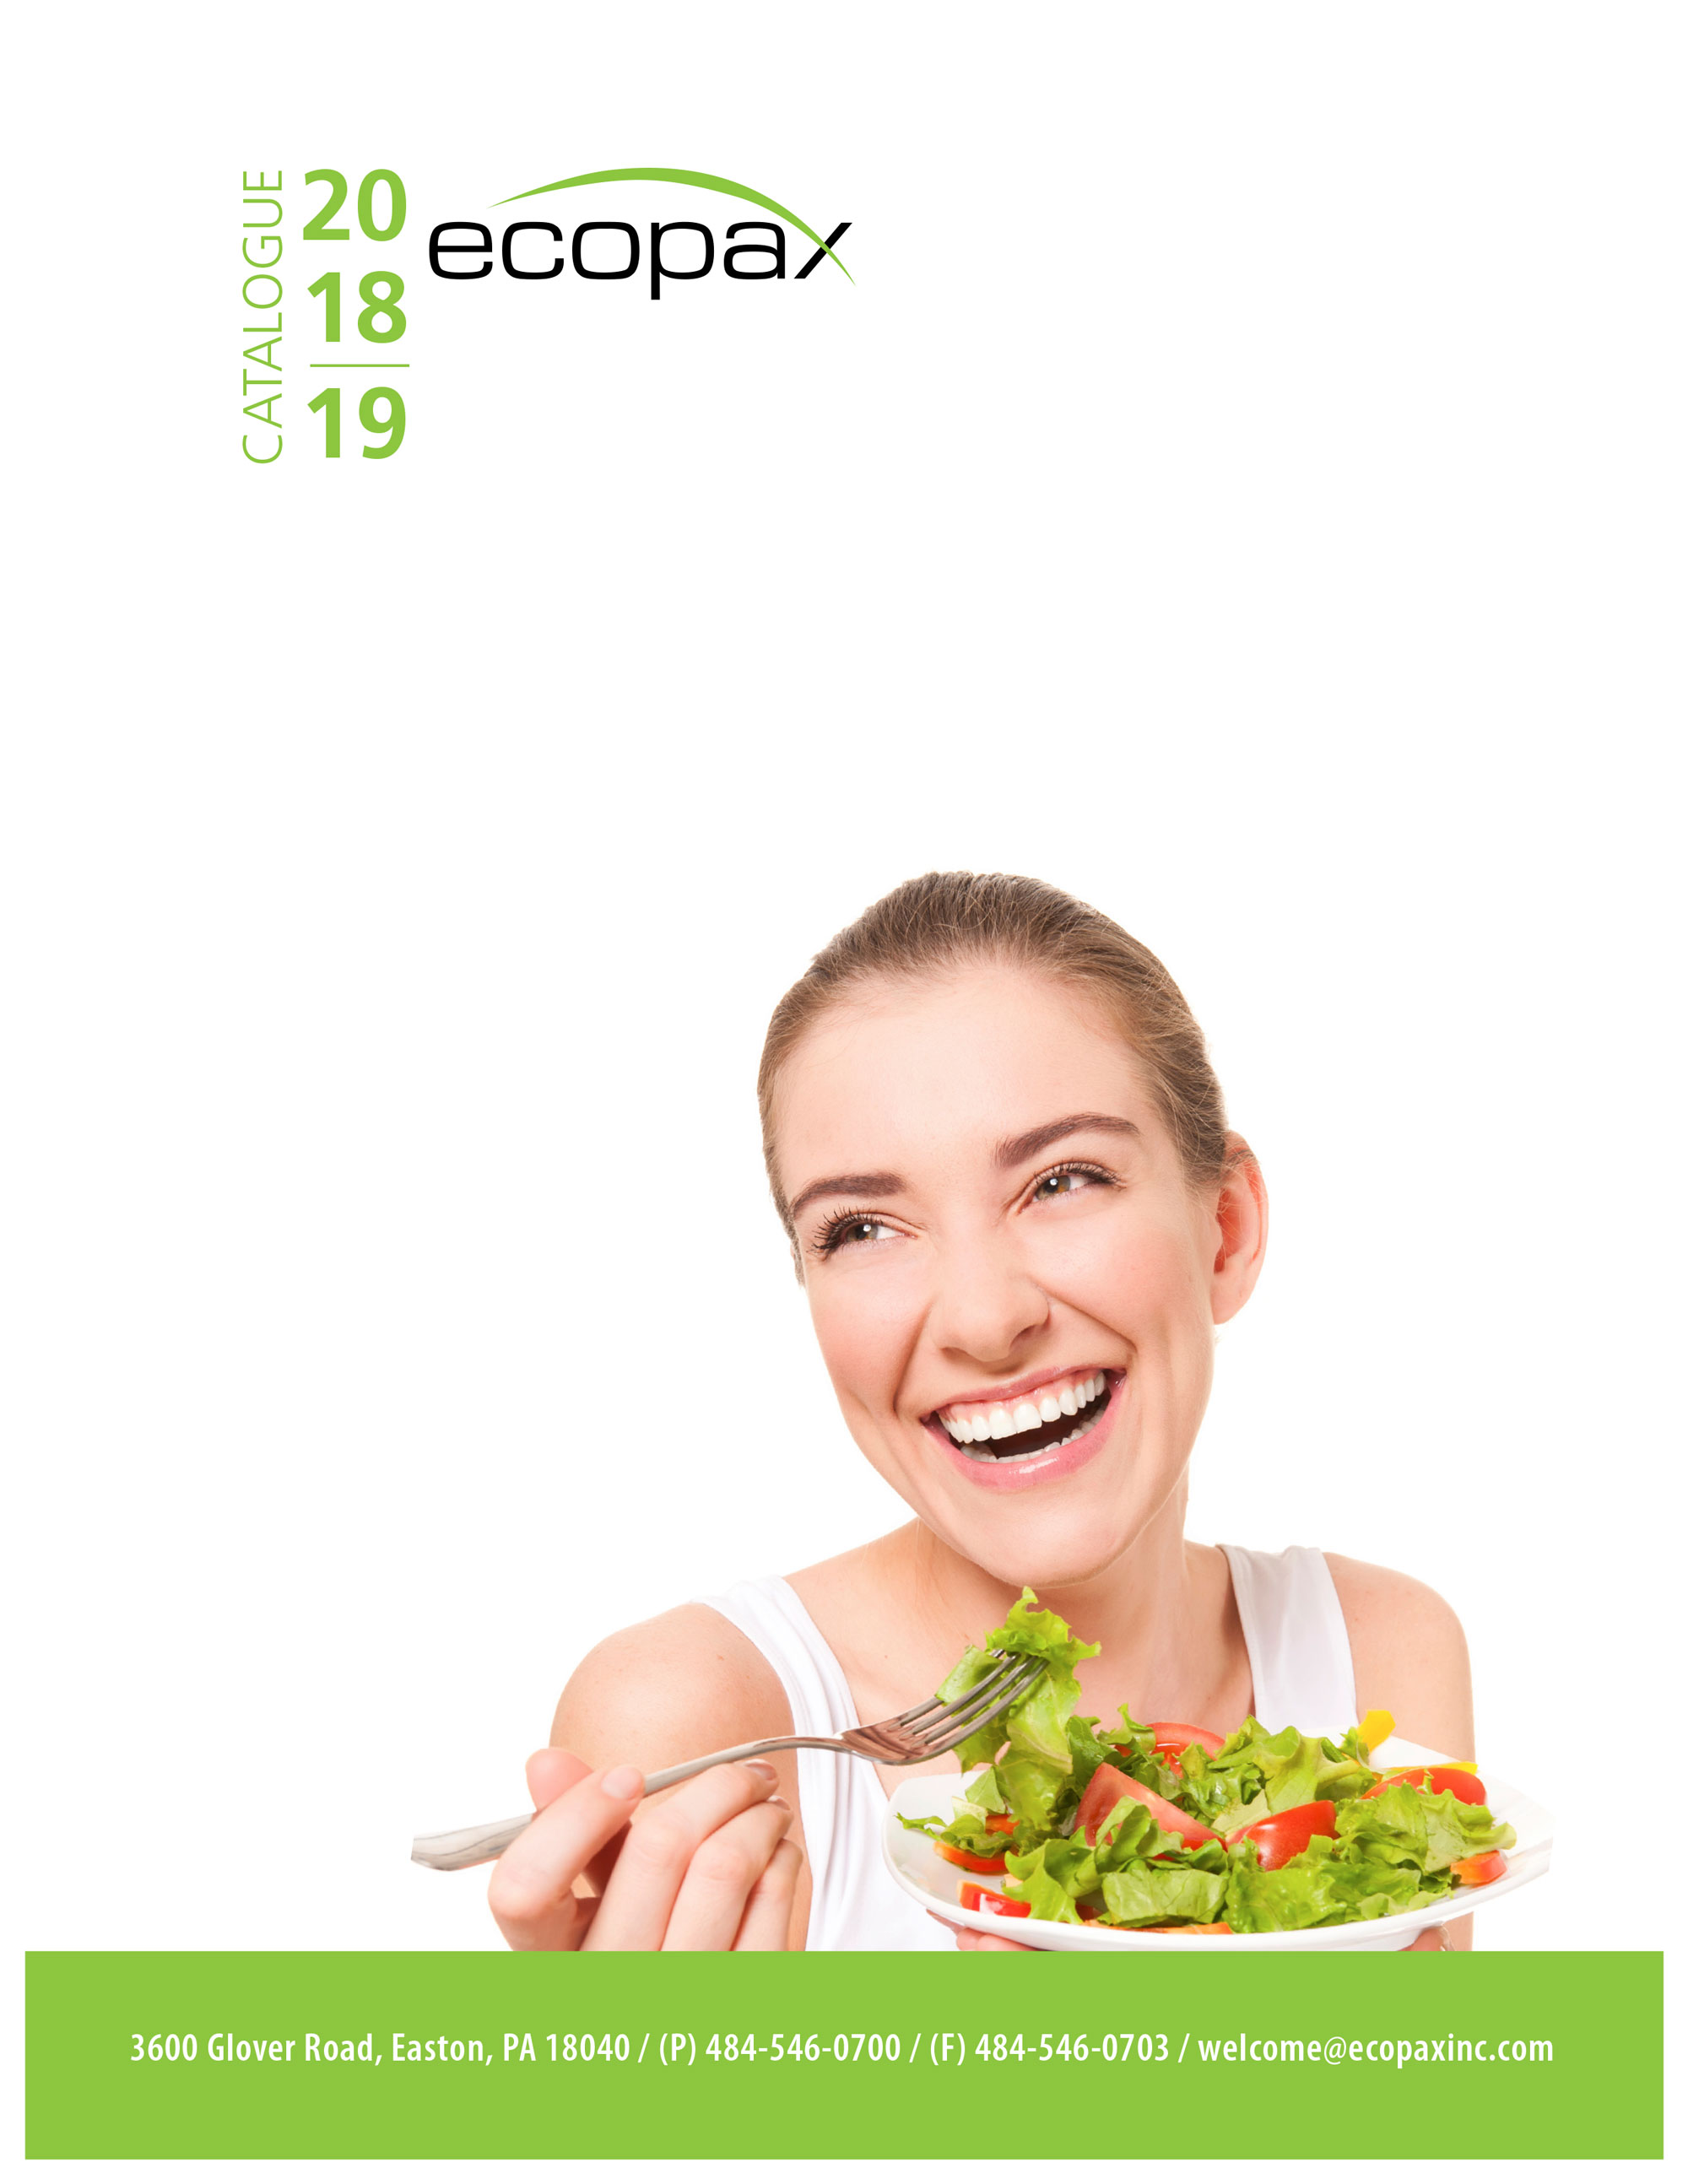 Ecopax Product catalogue cover featuring a joyful young woman eating a healthy plate of salade using Ecopax's disposable foam plate